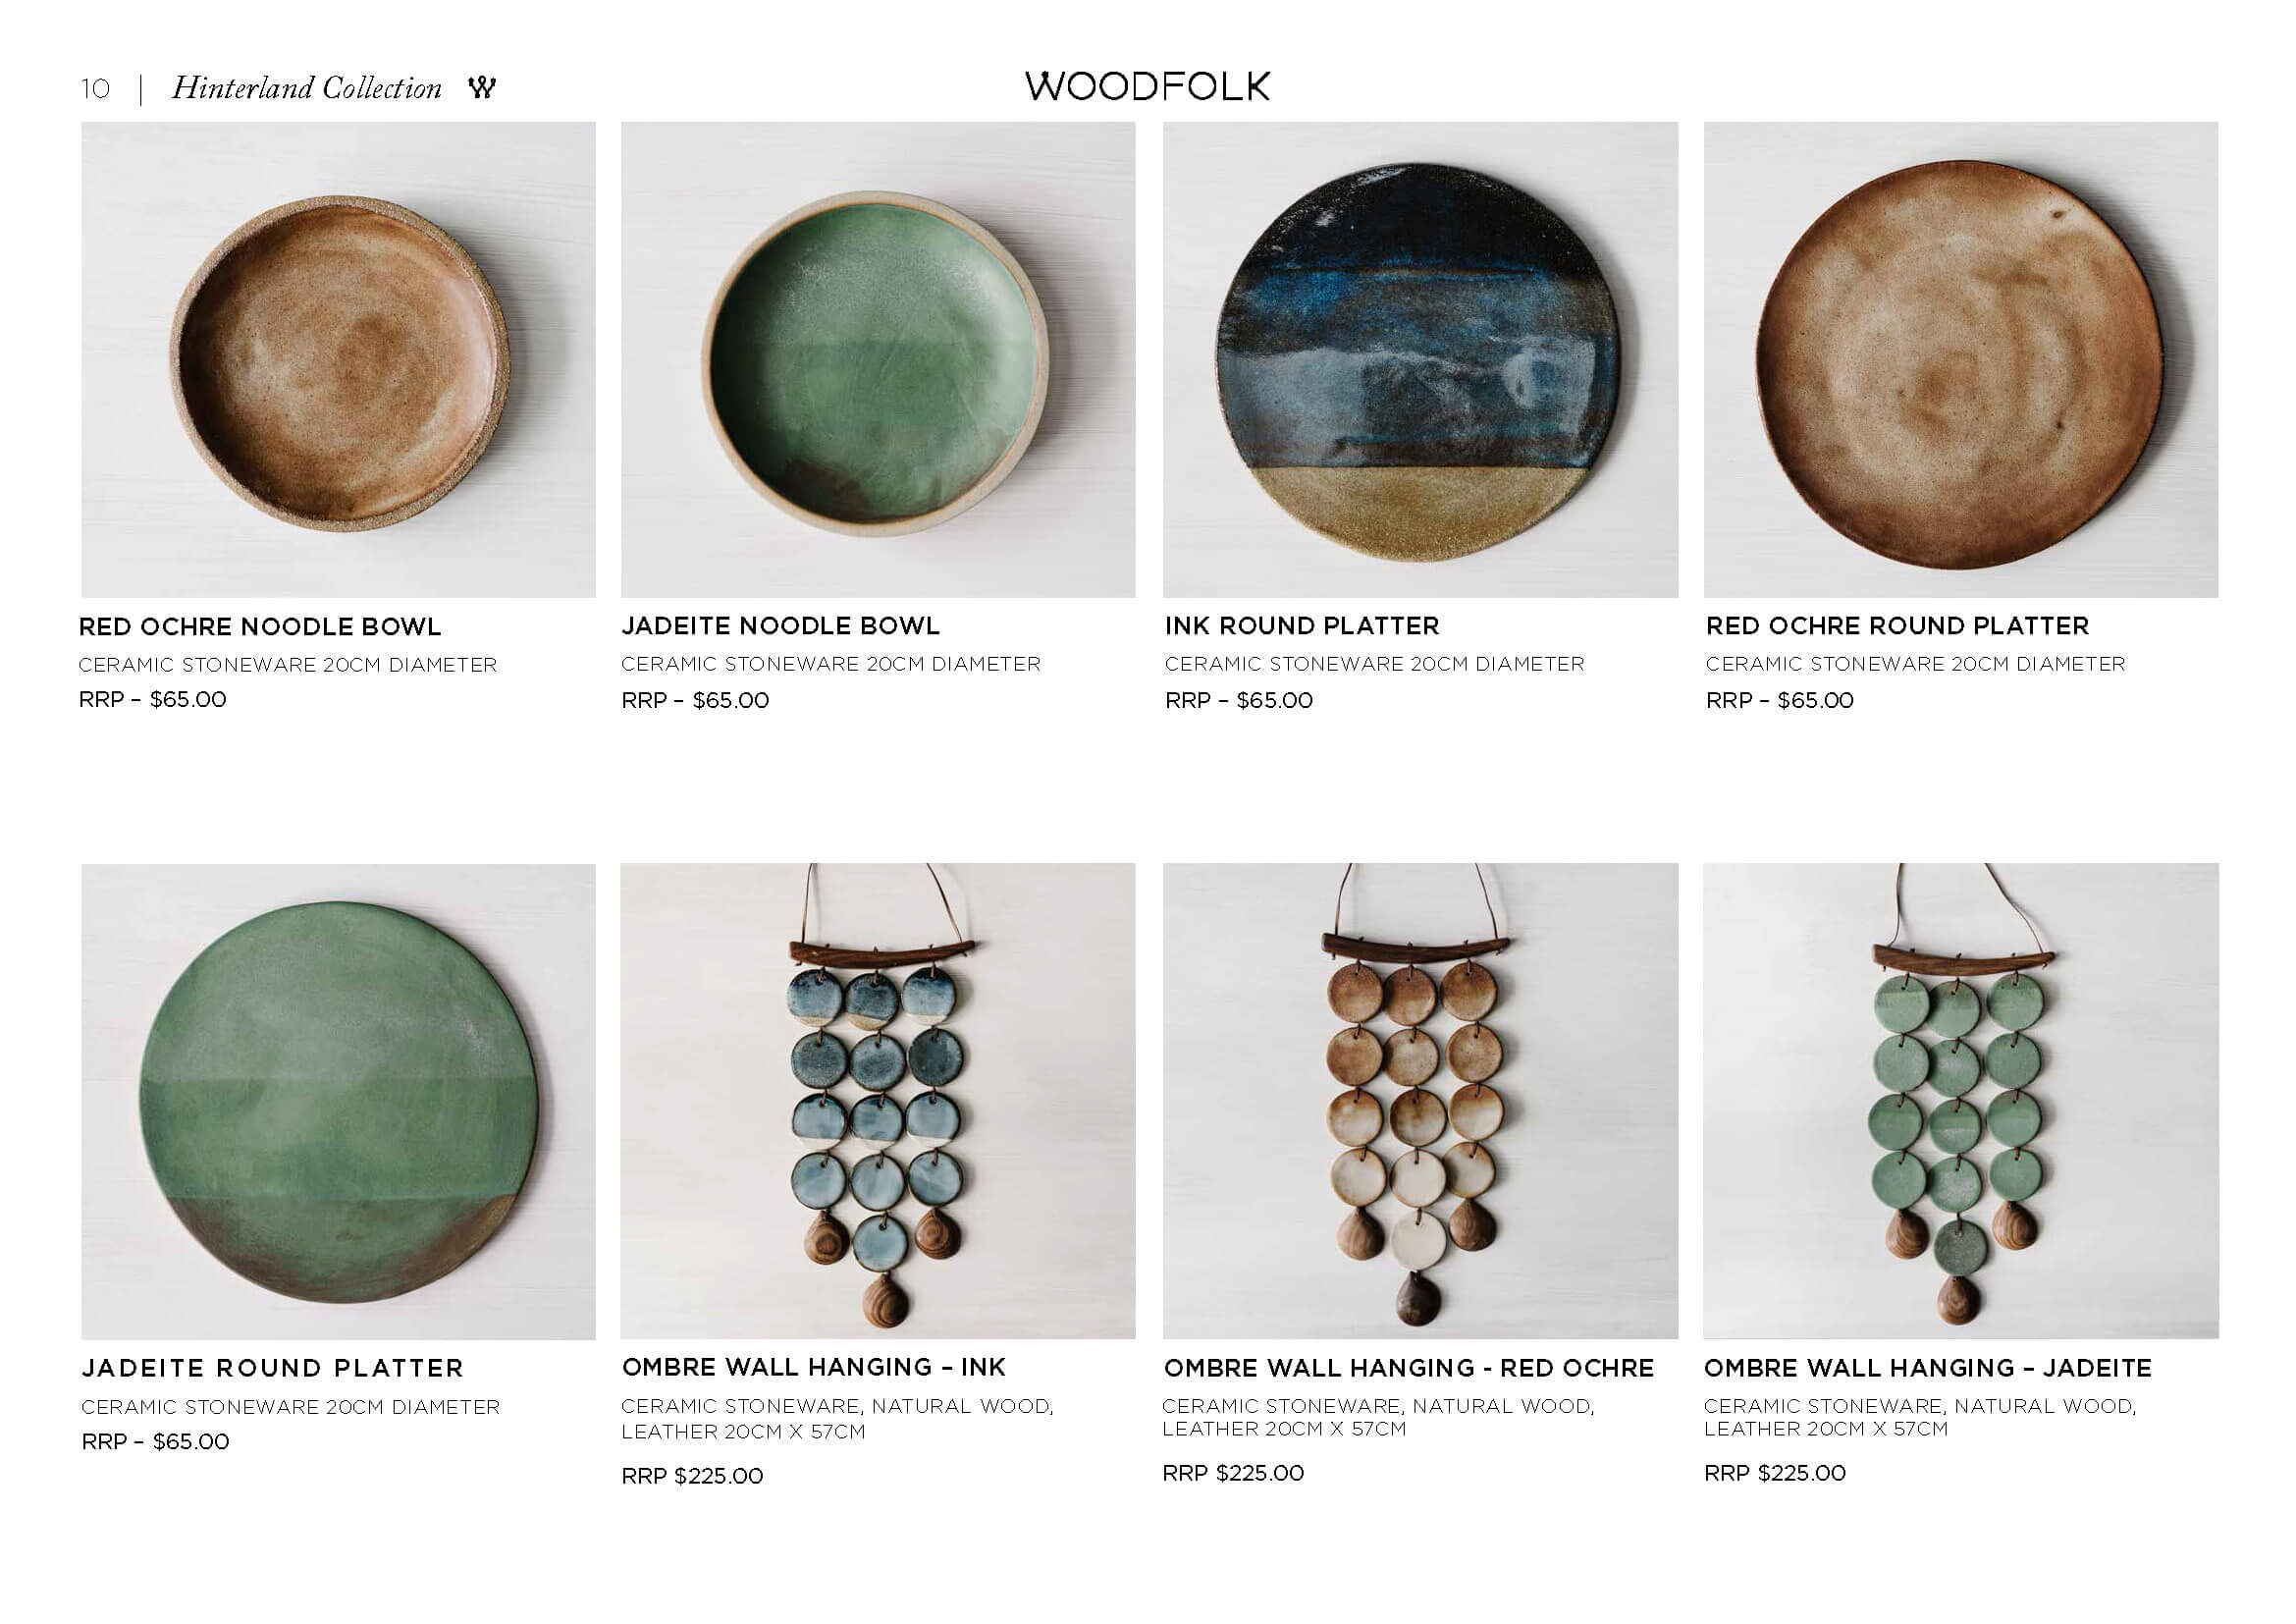 Woodfolk-Catalogue-2019_Web_Public_Page_11.jpg